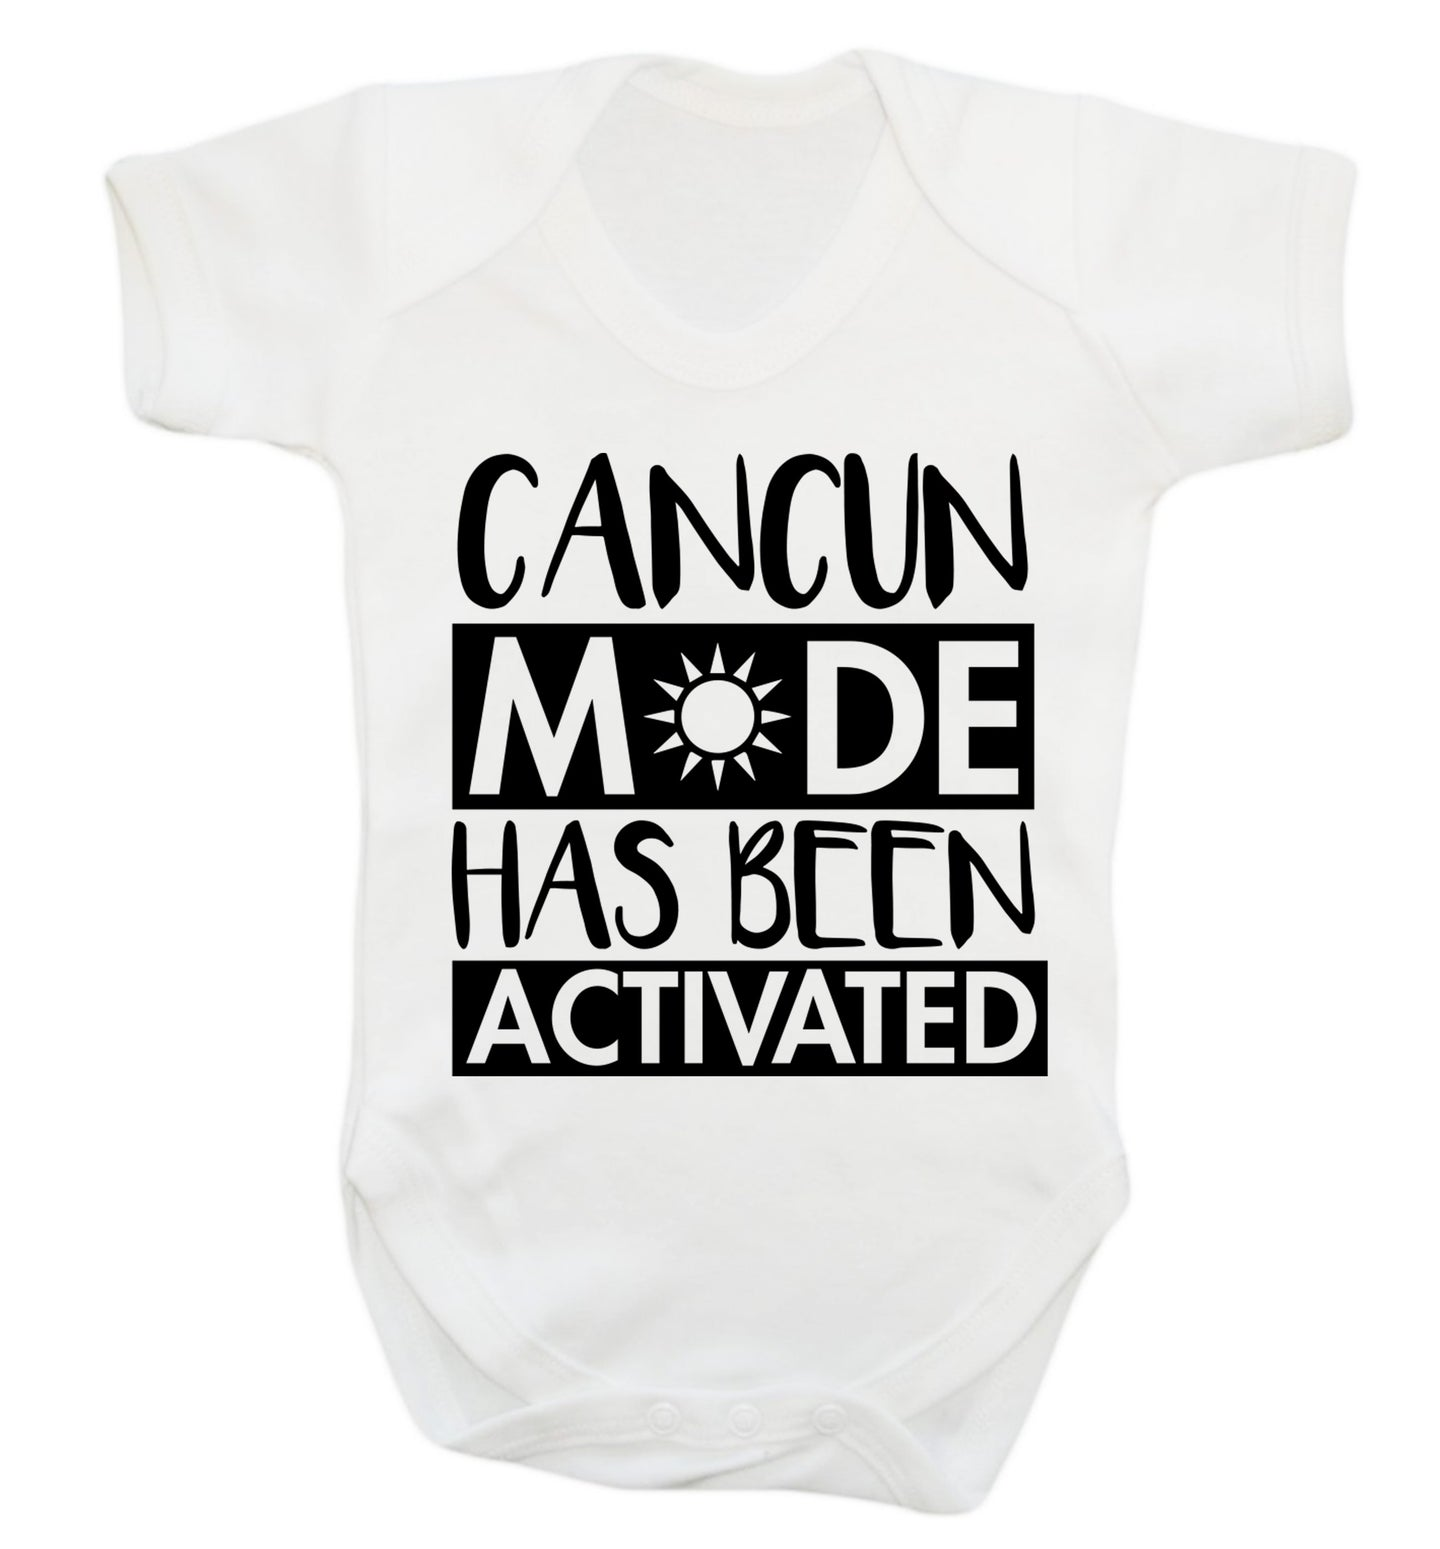 Cancun mode has been activated Baby Vest white 18-24 months